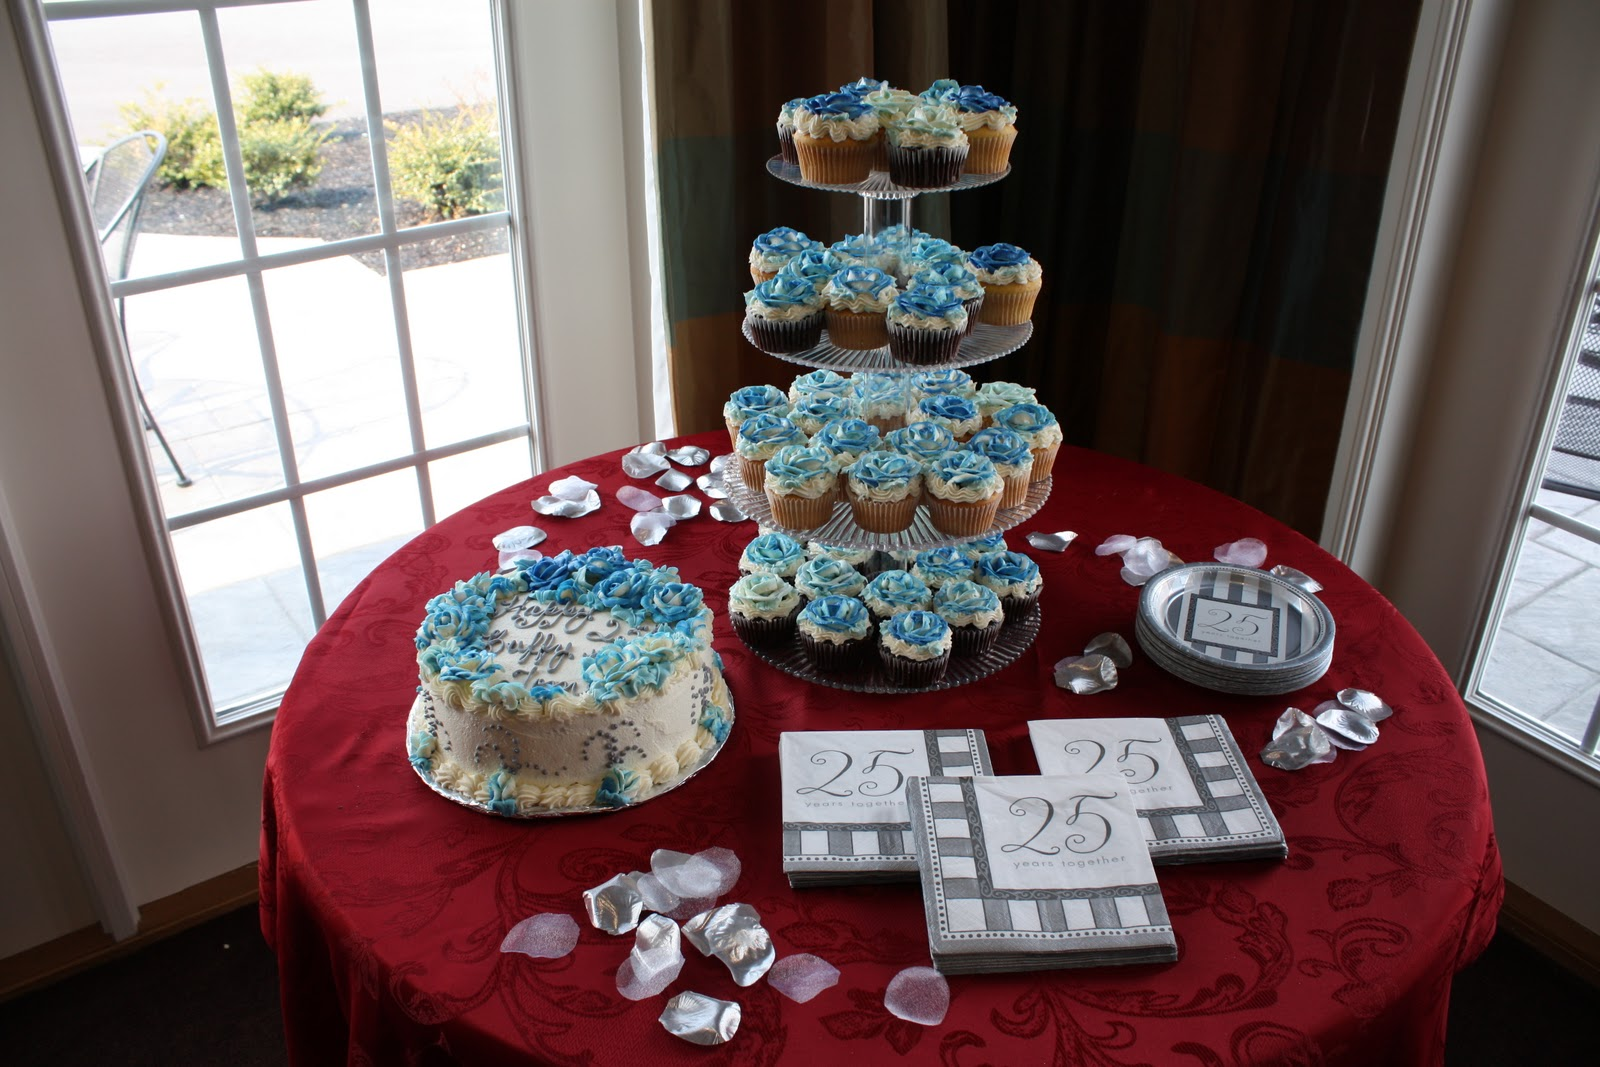 25 Wedding Anniversary Celebration Ideas: Learn More At 4.bp.blogspot.com